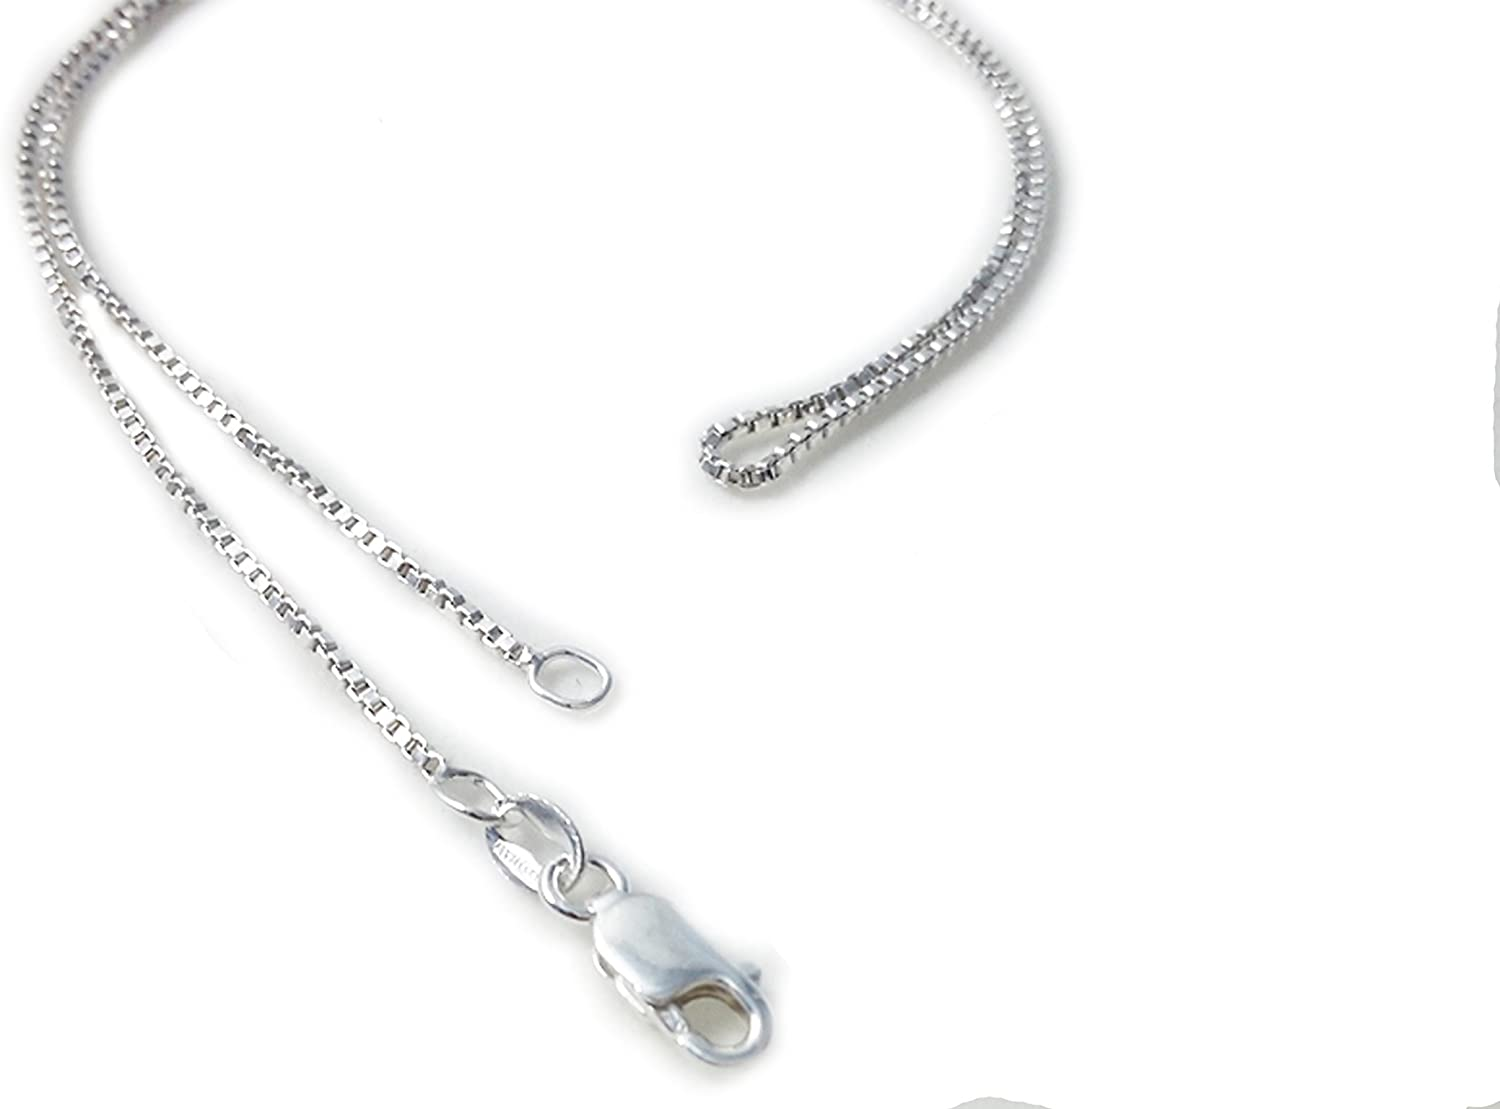 1.2mm Wheat Link Italian Rope Chain Necklace in Solid .925 Italy Sterling Silver